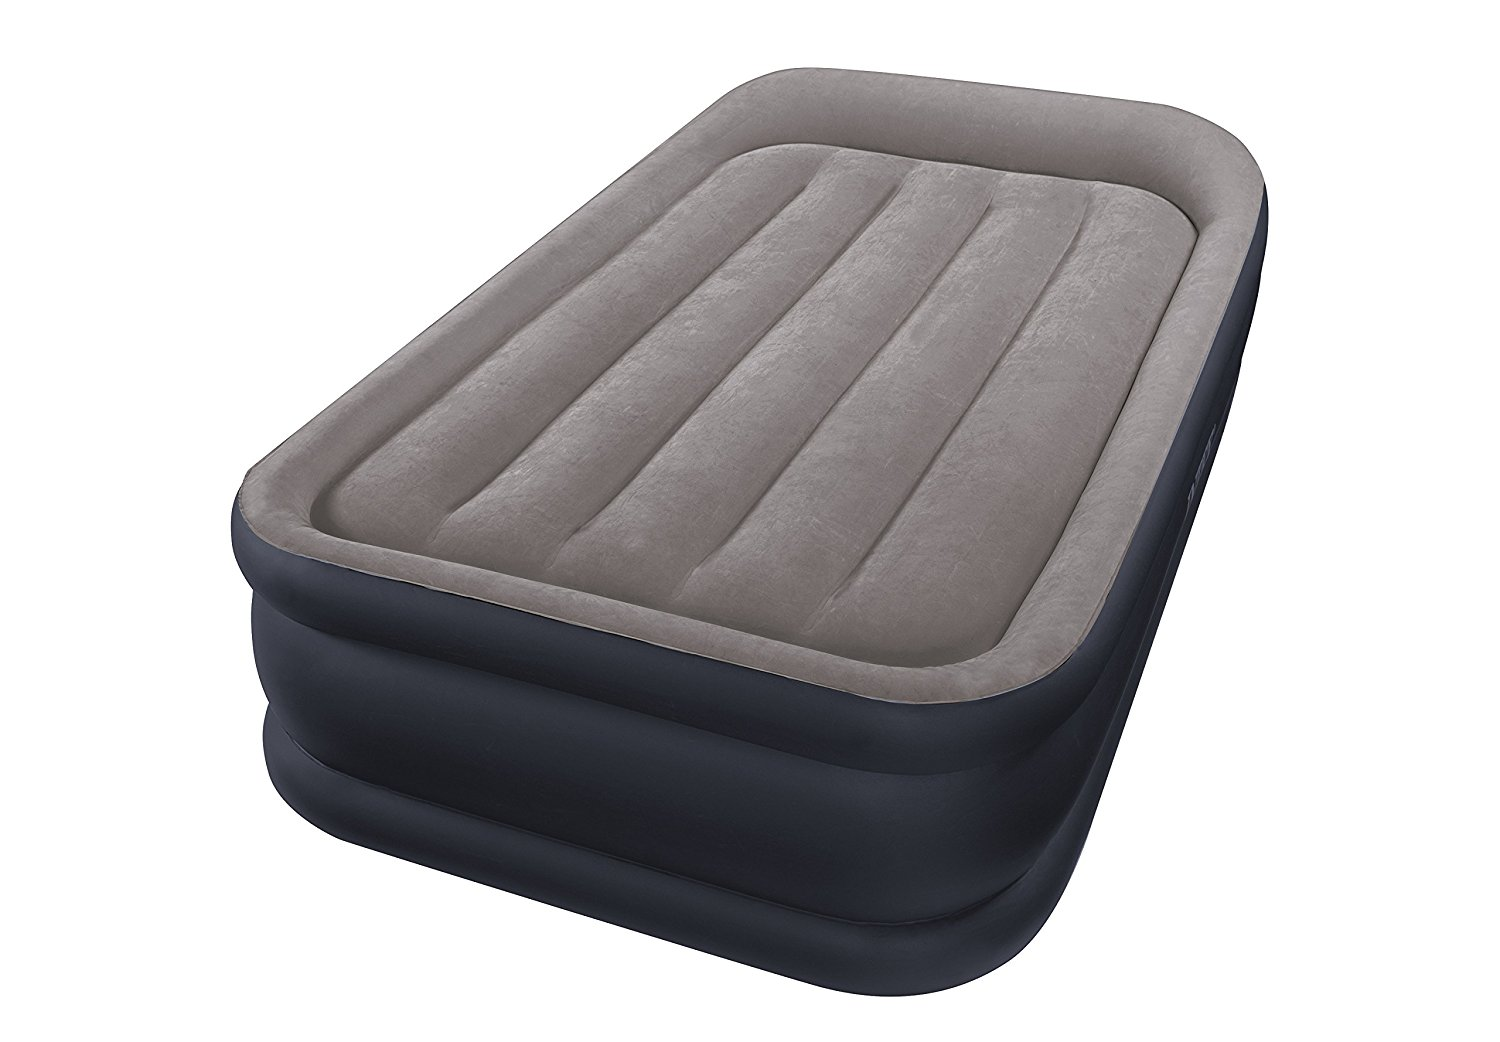 Lot 55 - Intex Deluxe Pillow Rest Raised Airbed and Built-in Pump